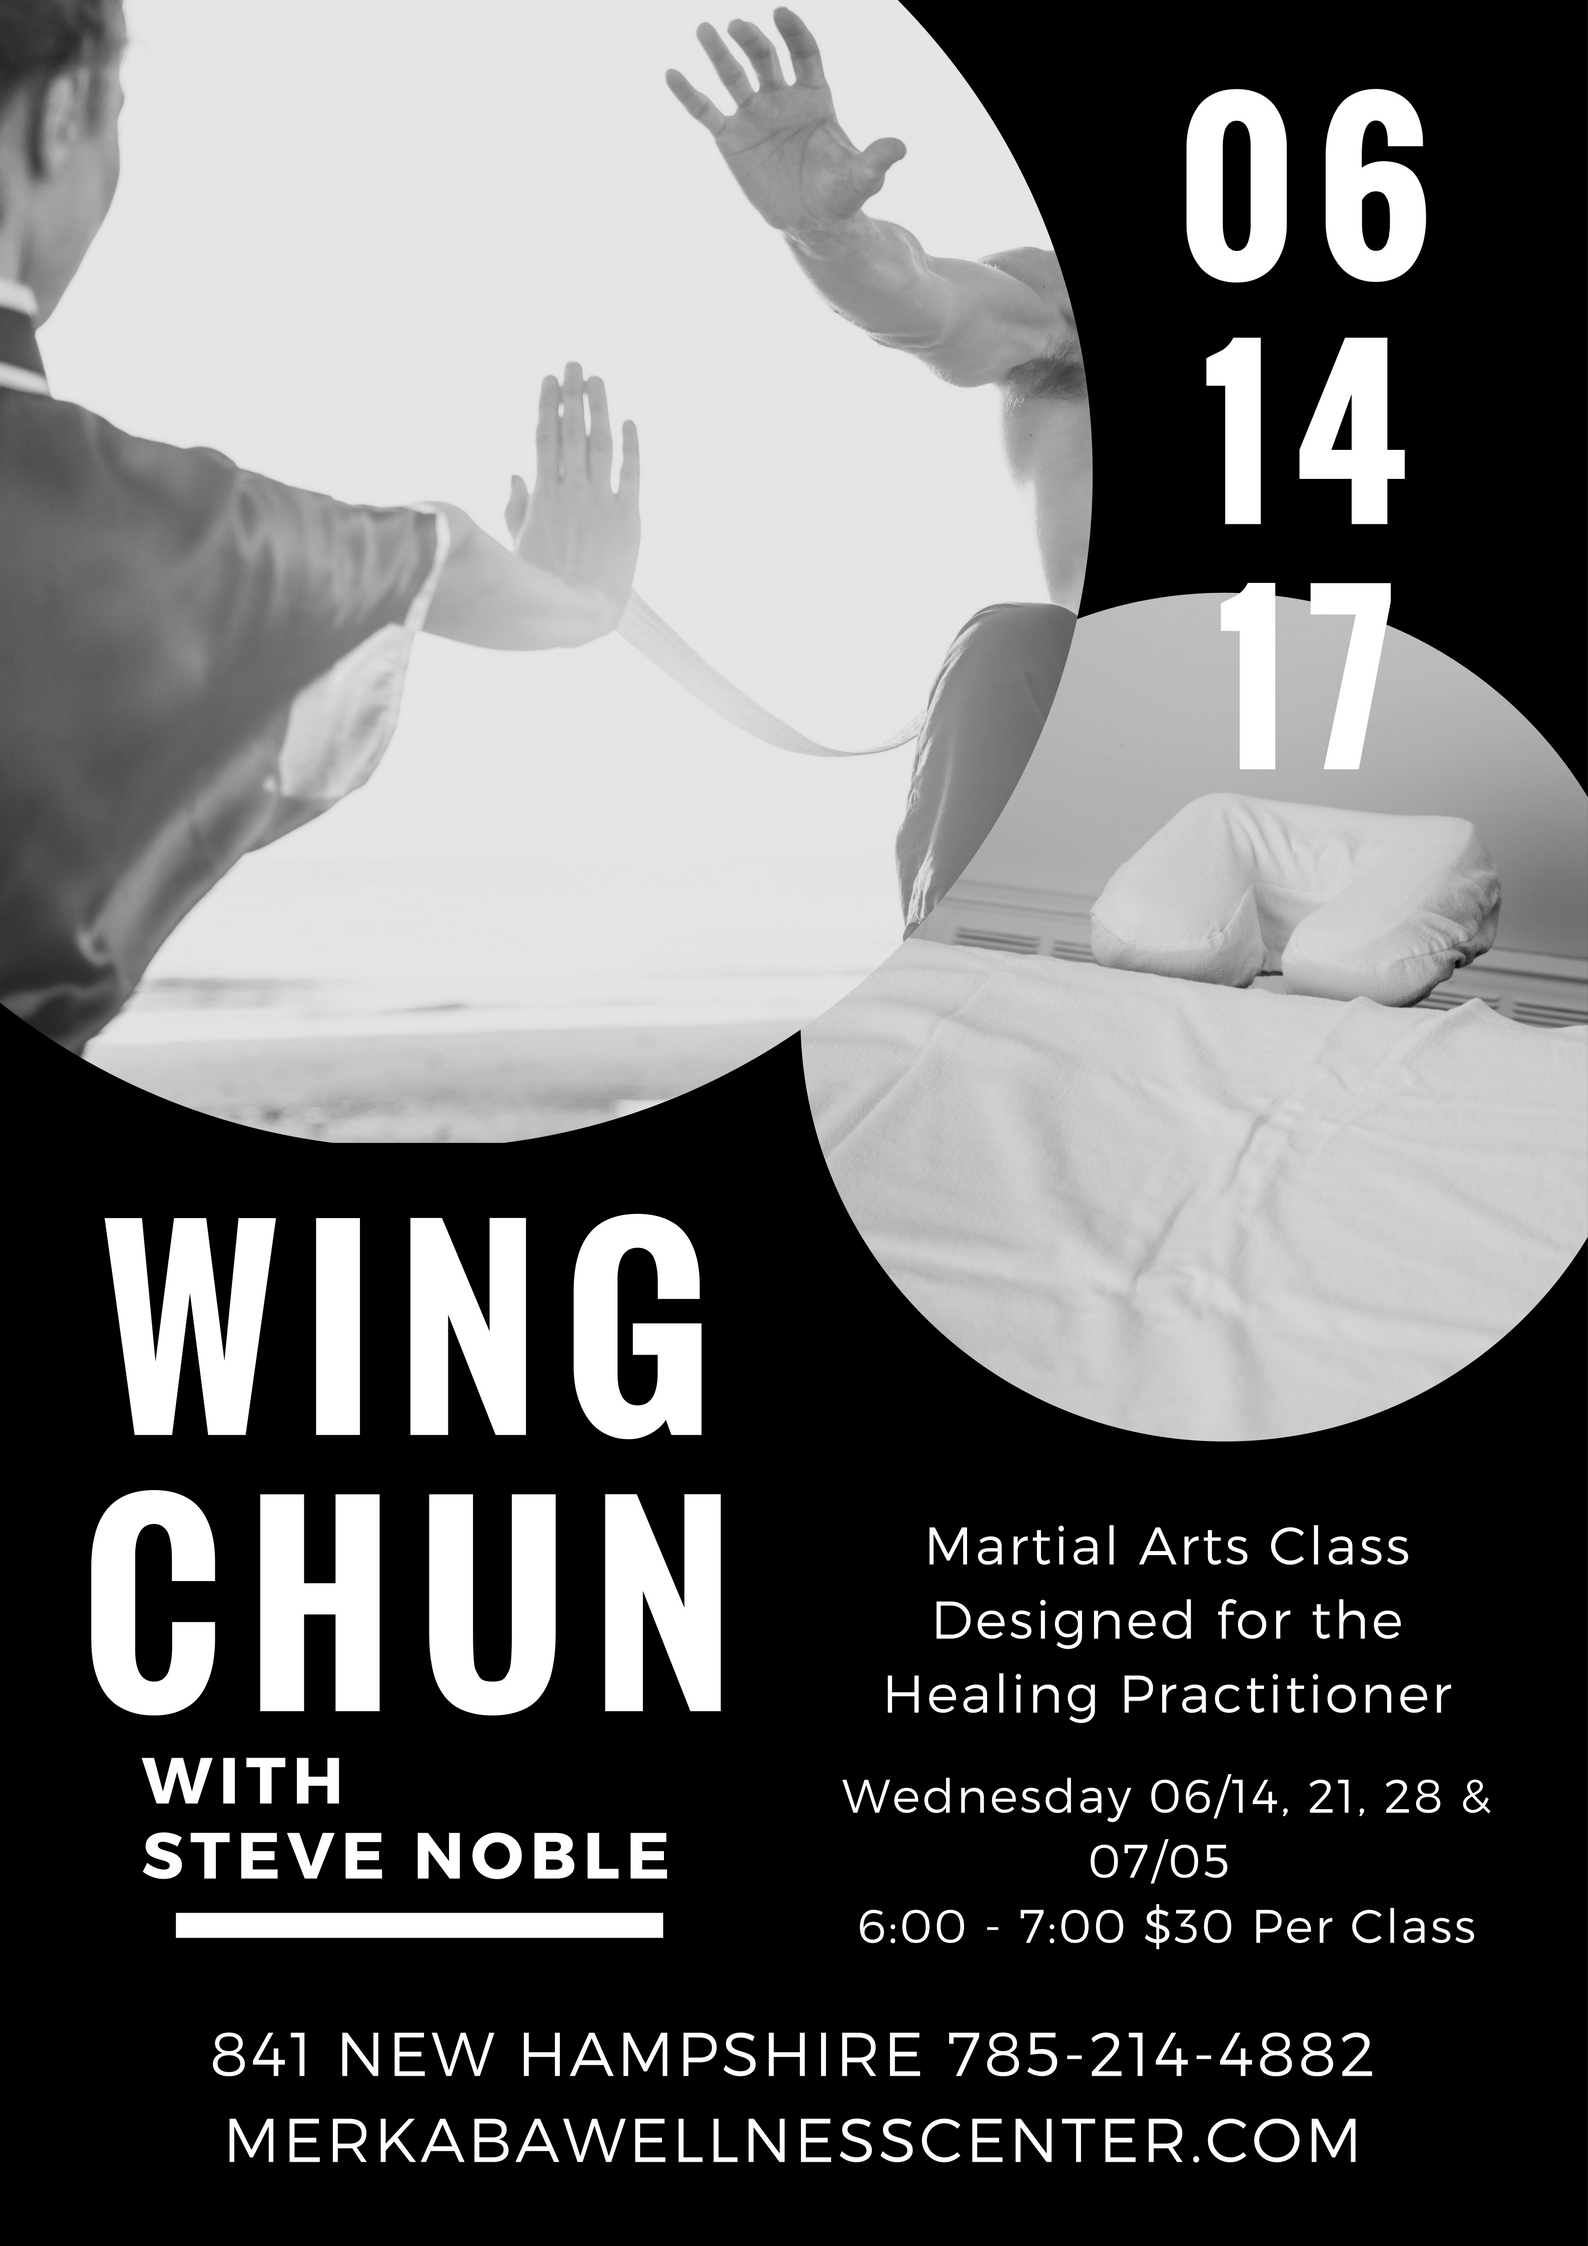 Join us Thursday's starting June 14th - July 5th, for a 4 week self defense class designed specifically for Healing Practitioners who work in small enclosed spaces.  Wing Chun insists in both principle and practicality that no matter the size difference or close proximity, you can handle any self defense situation if you have the right skills.   History of Wing Chun   The common legend as told by Yip Man,  involves a young woman named Yim Wing Chun during the period after the destruction by the Qing government of the Southern Shaolin and its associated temples.  Having denied the local warlord's marriage offer, Yim Wing-Chun said she would reconsider the proposal if he could beat her in a fight. She soon crossed paths with a Buddhist nun named Ng Mui who was a Shaolin Sect survivor, and asked the nun to teach her to fight. According to legend, Ng Mui taught Yim Wing-Chun a new system of martial art that had been inspired by the nun's observations of a confrontation between a Snake and a Crane. This then still nameless style enabled Yim Wing-Chun to beat the warlord in a one-on-one fight. Yim Wing-Chun thereafter married Leung Bok-Chau and taught him the style, which was later named after her.  We hope to never have to use these skills but should we be faced with a challenge we will be well equipped to handle it.